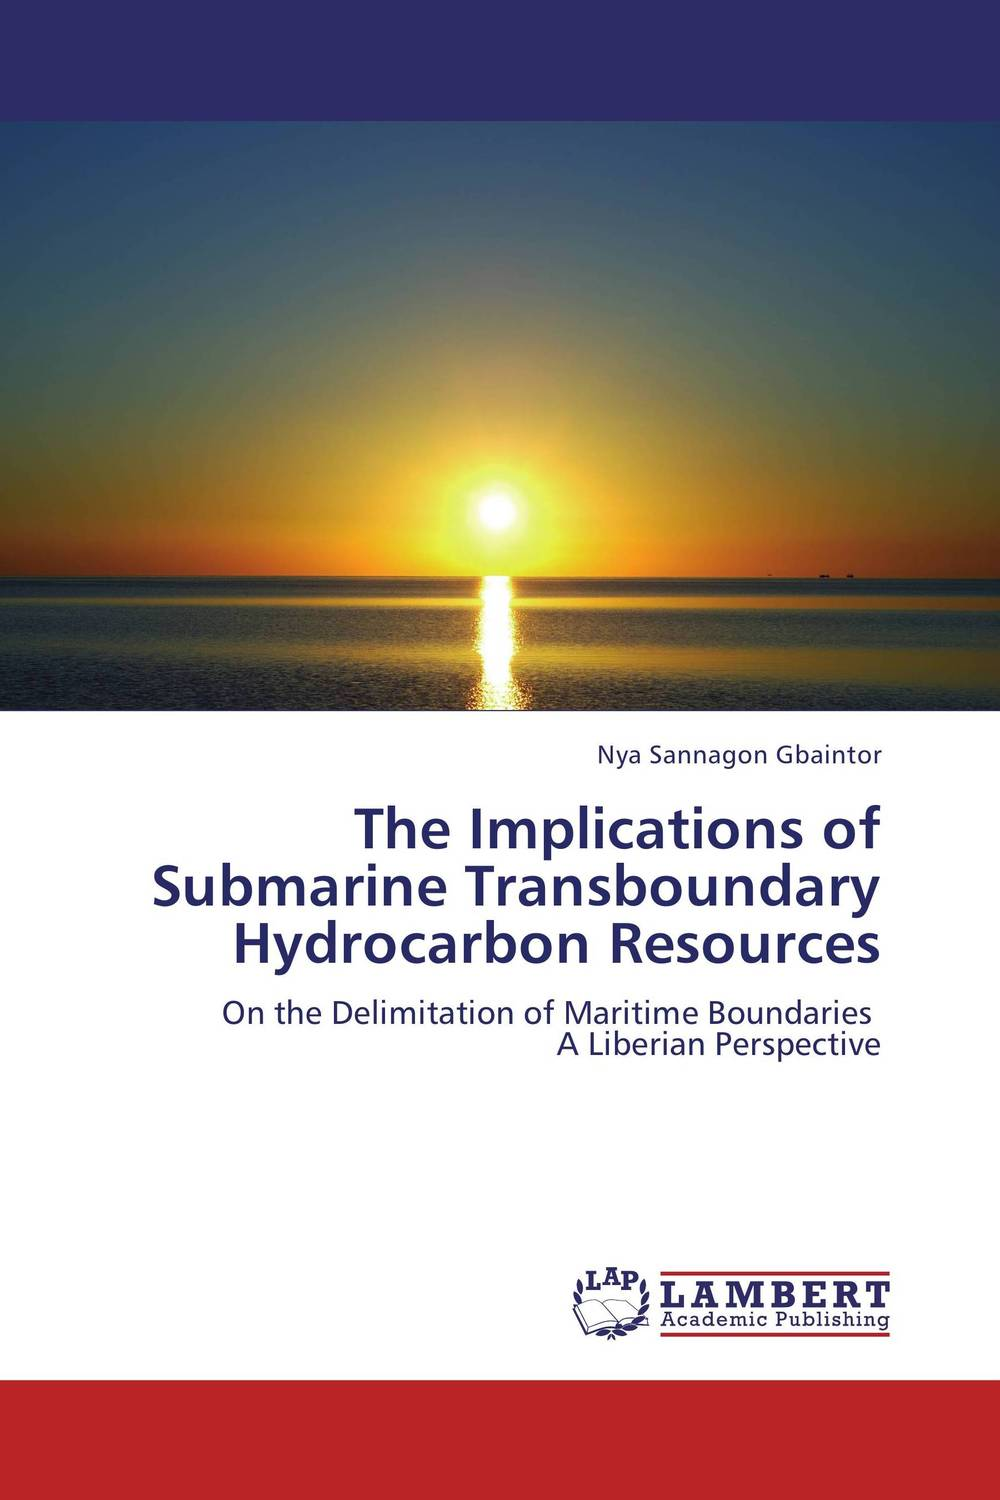 The Implications of Submarine Transboundary Hydrocarbon Resources venice a maritime republic